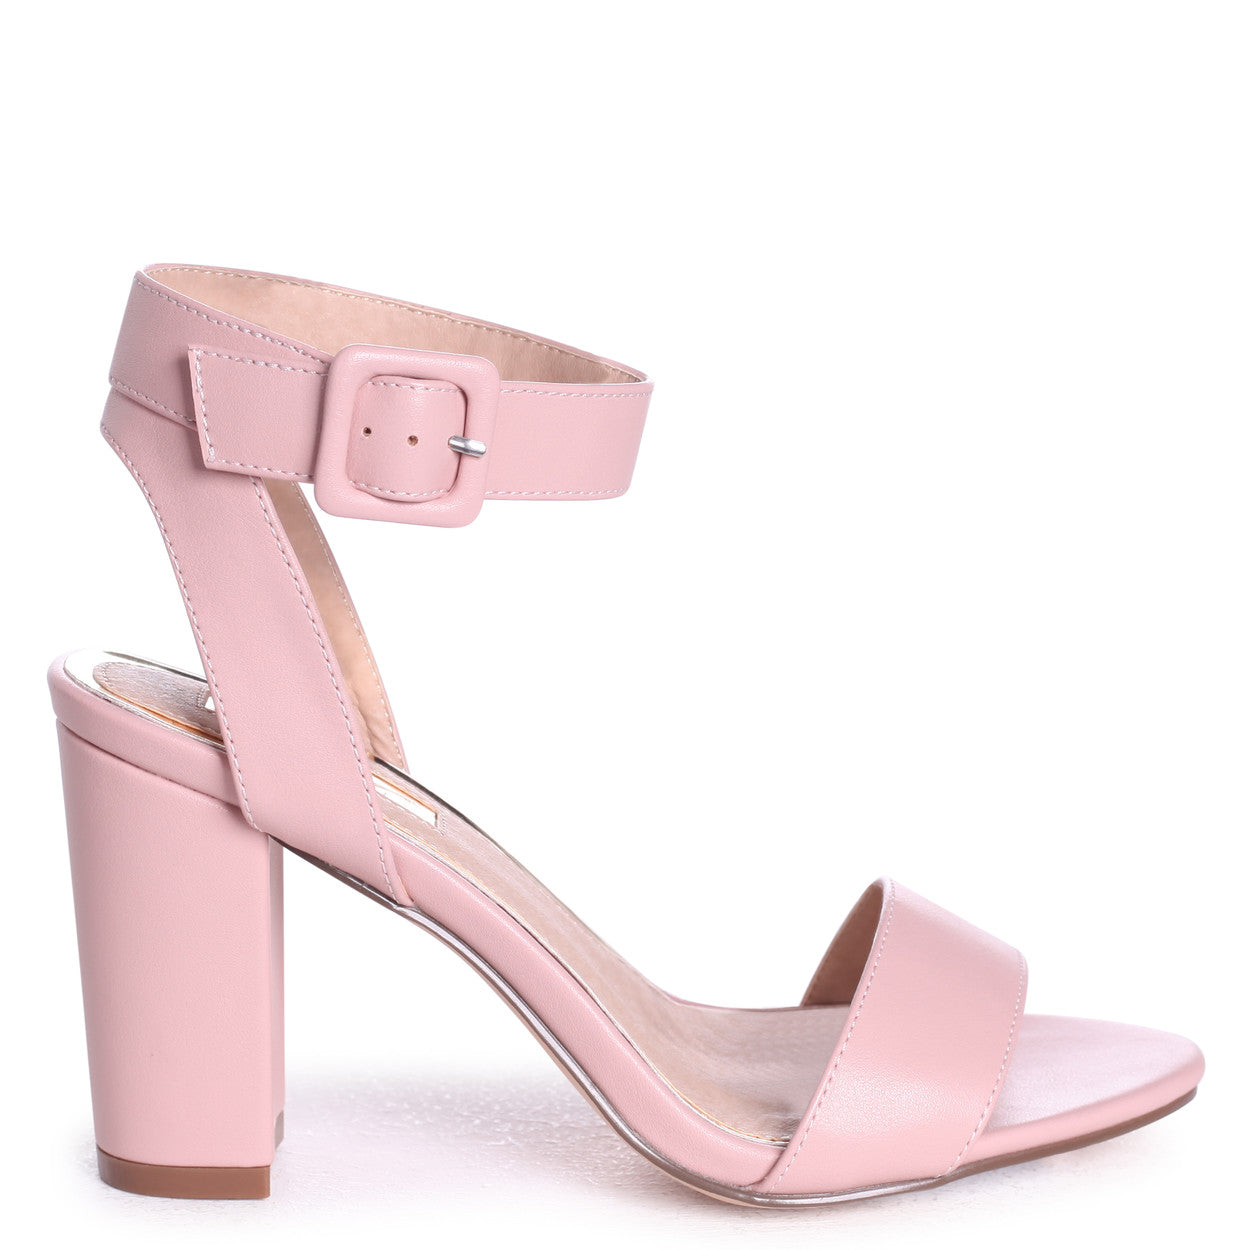 753bbbc04c1 Dusky Pink Open Toe Block Heel With Ankle Strap And Buckle Detail ...